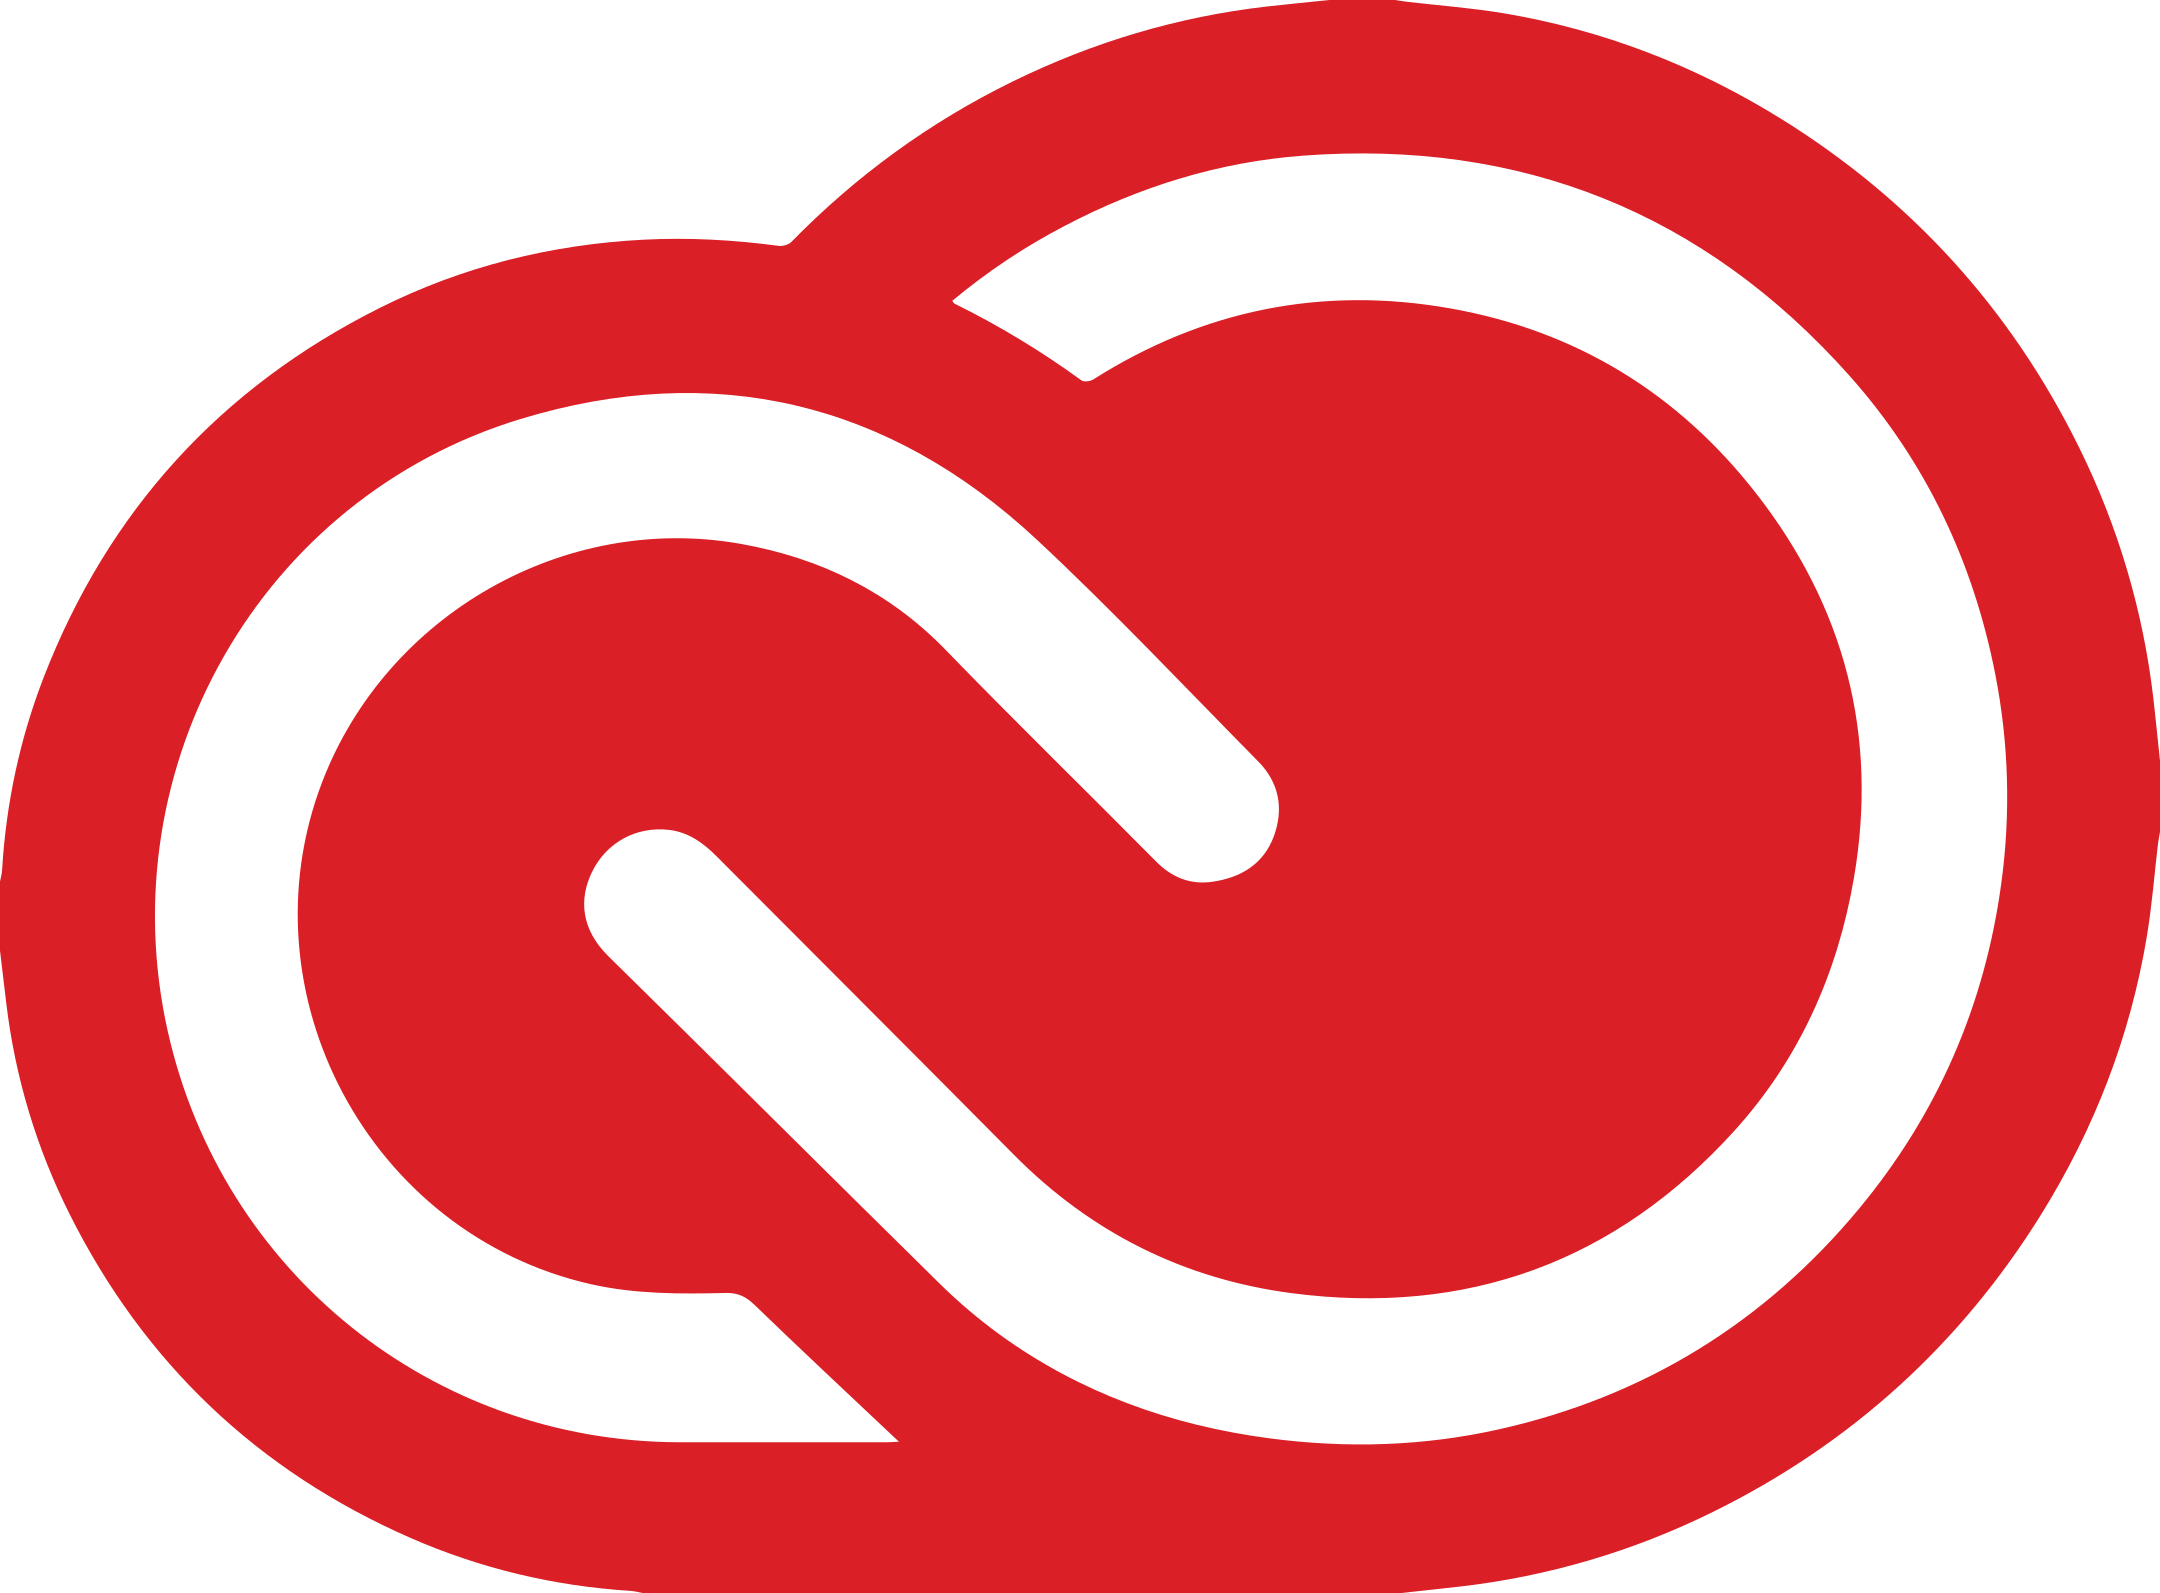 adobe creative cloud logo 1 - Adobe Creative Cloud Logo